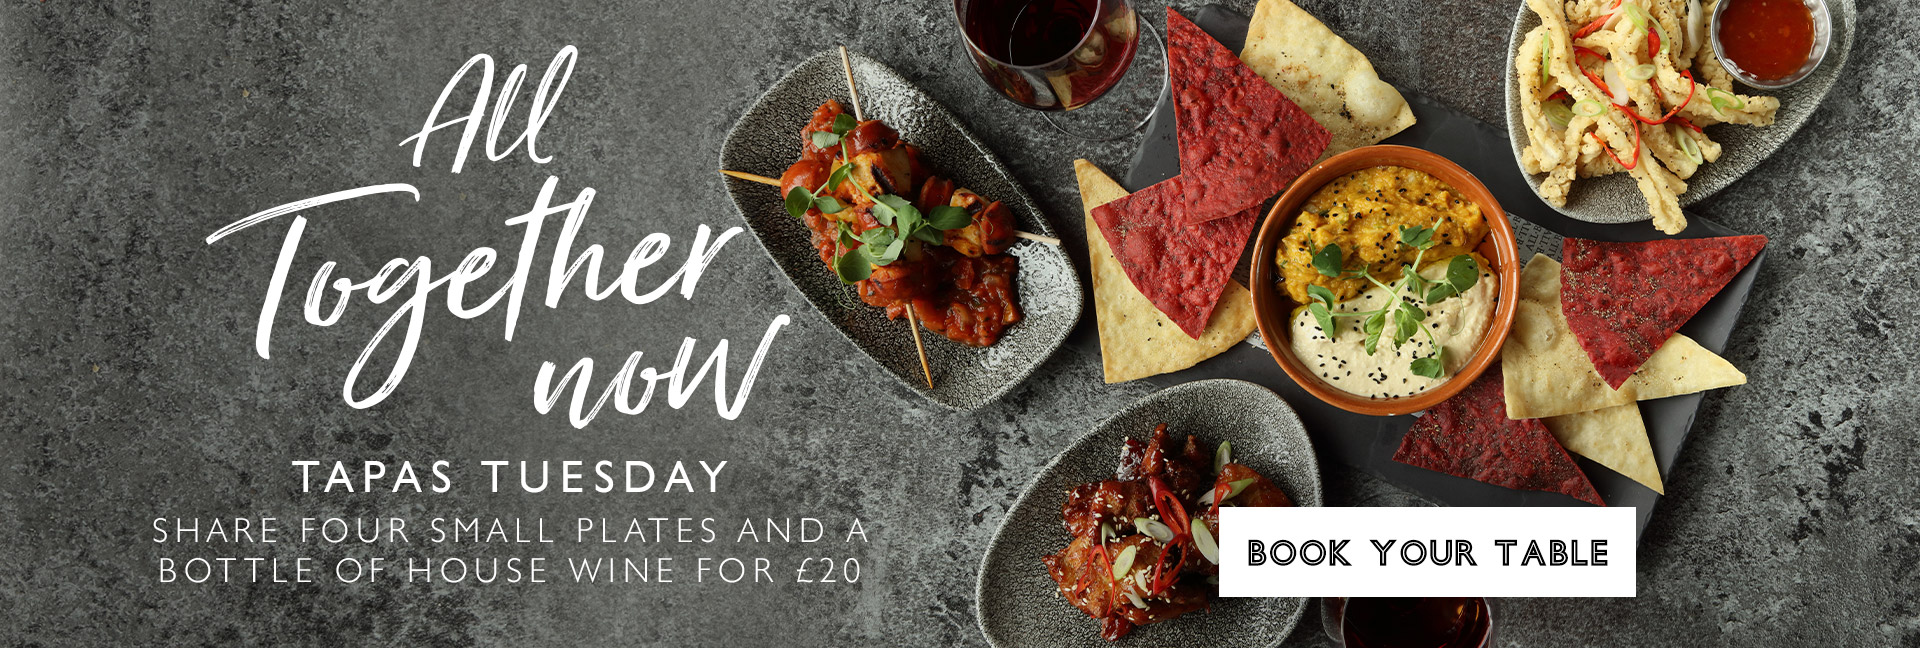 Tapas Tuesday at All Bar One Newhall Street Birmingham - Book now